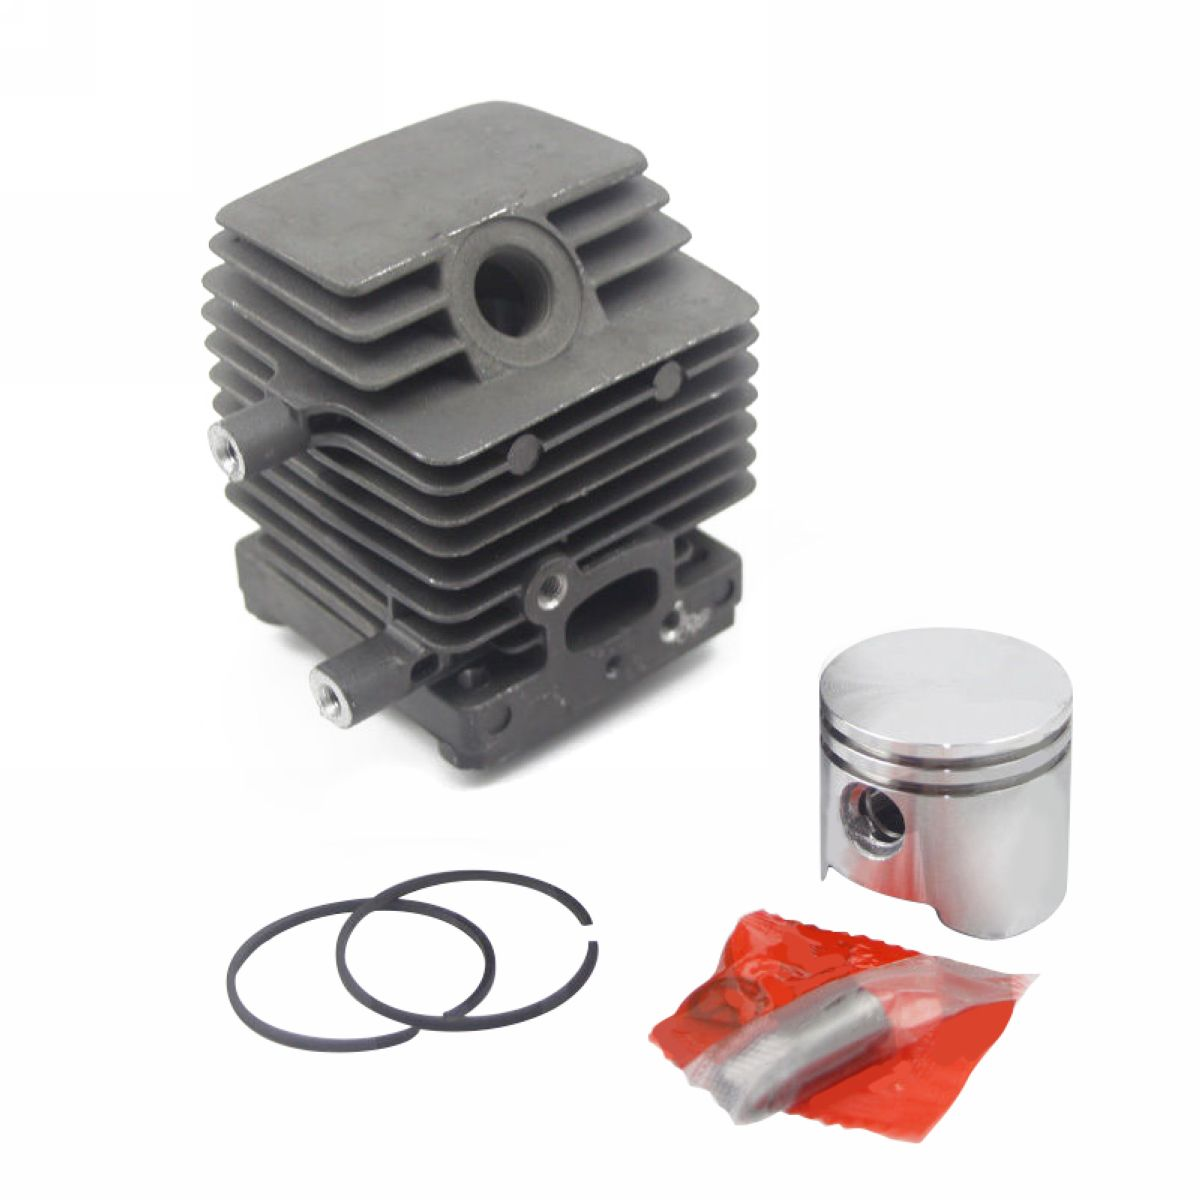 Mayitr 34mm Cylinder Piston Kit Ring For FS75 FS80 FS85 SP85 FC75 FC85 Chainsaw Parts Garden Tools 34mm cylinder piston kit for stihl fs75 fs80 fs85 fc75 fc85 fr85 kw85 chainsaw 4137 020 1202